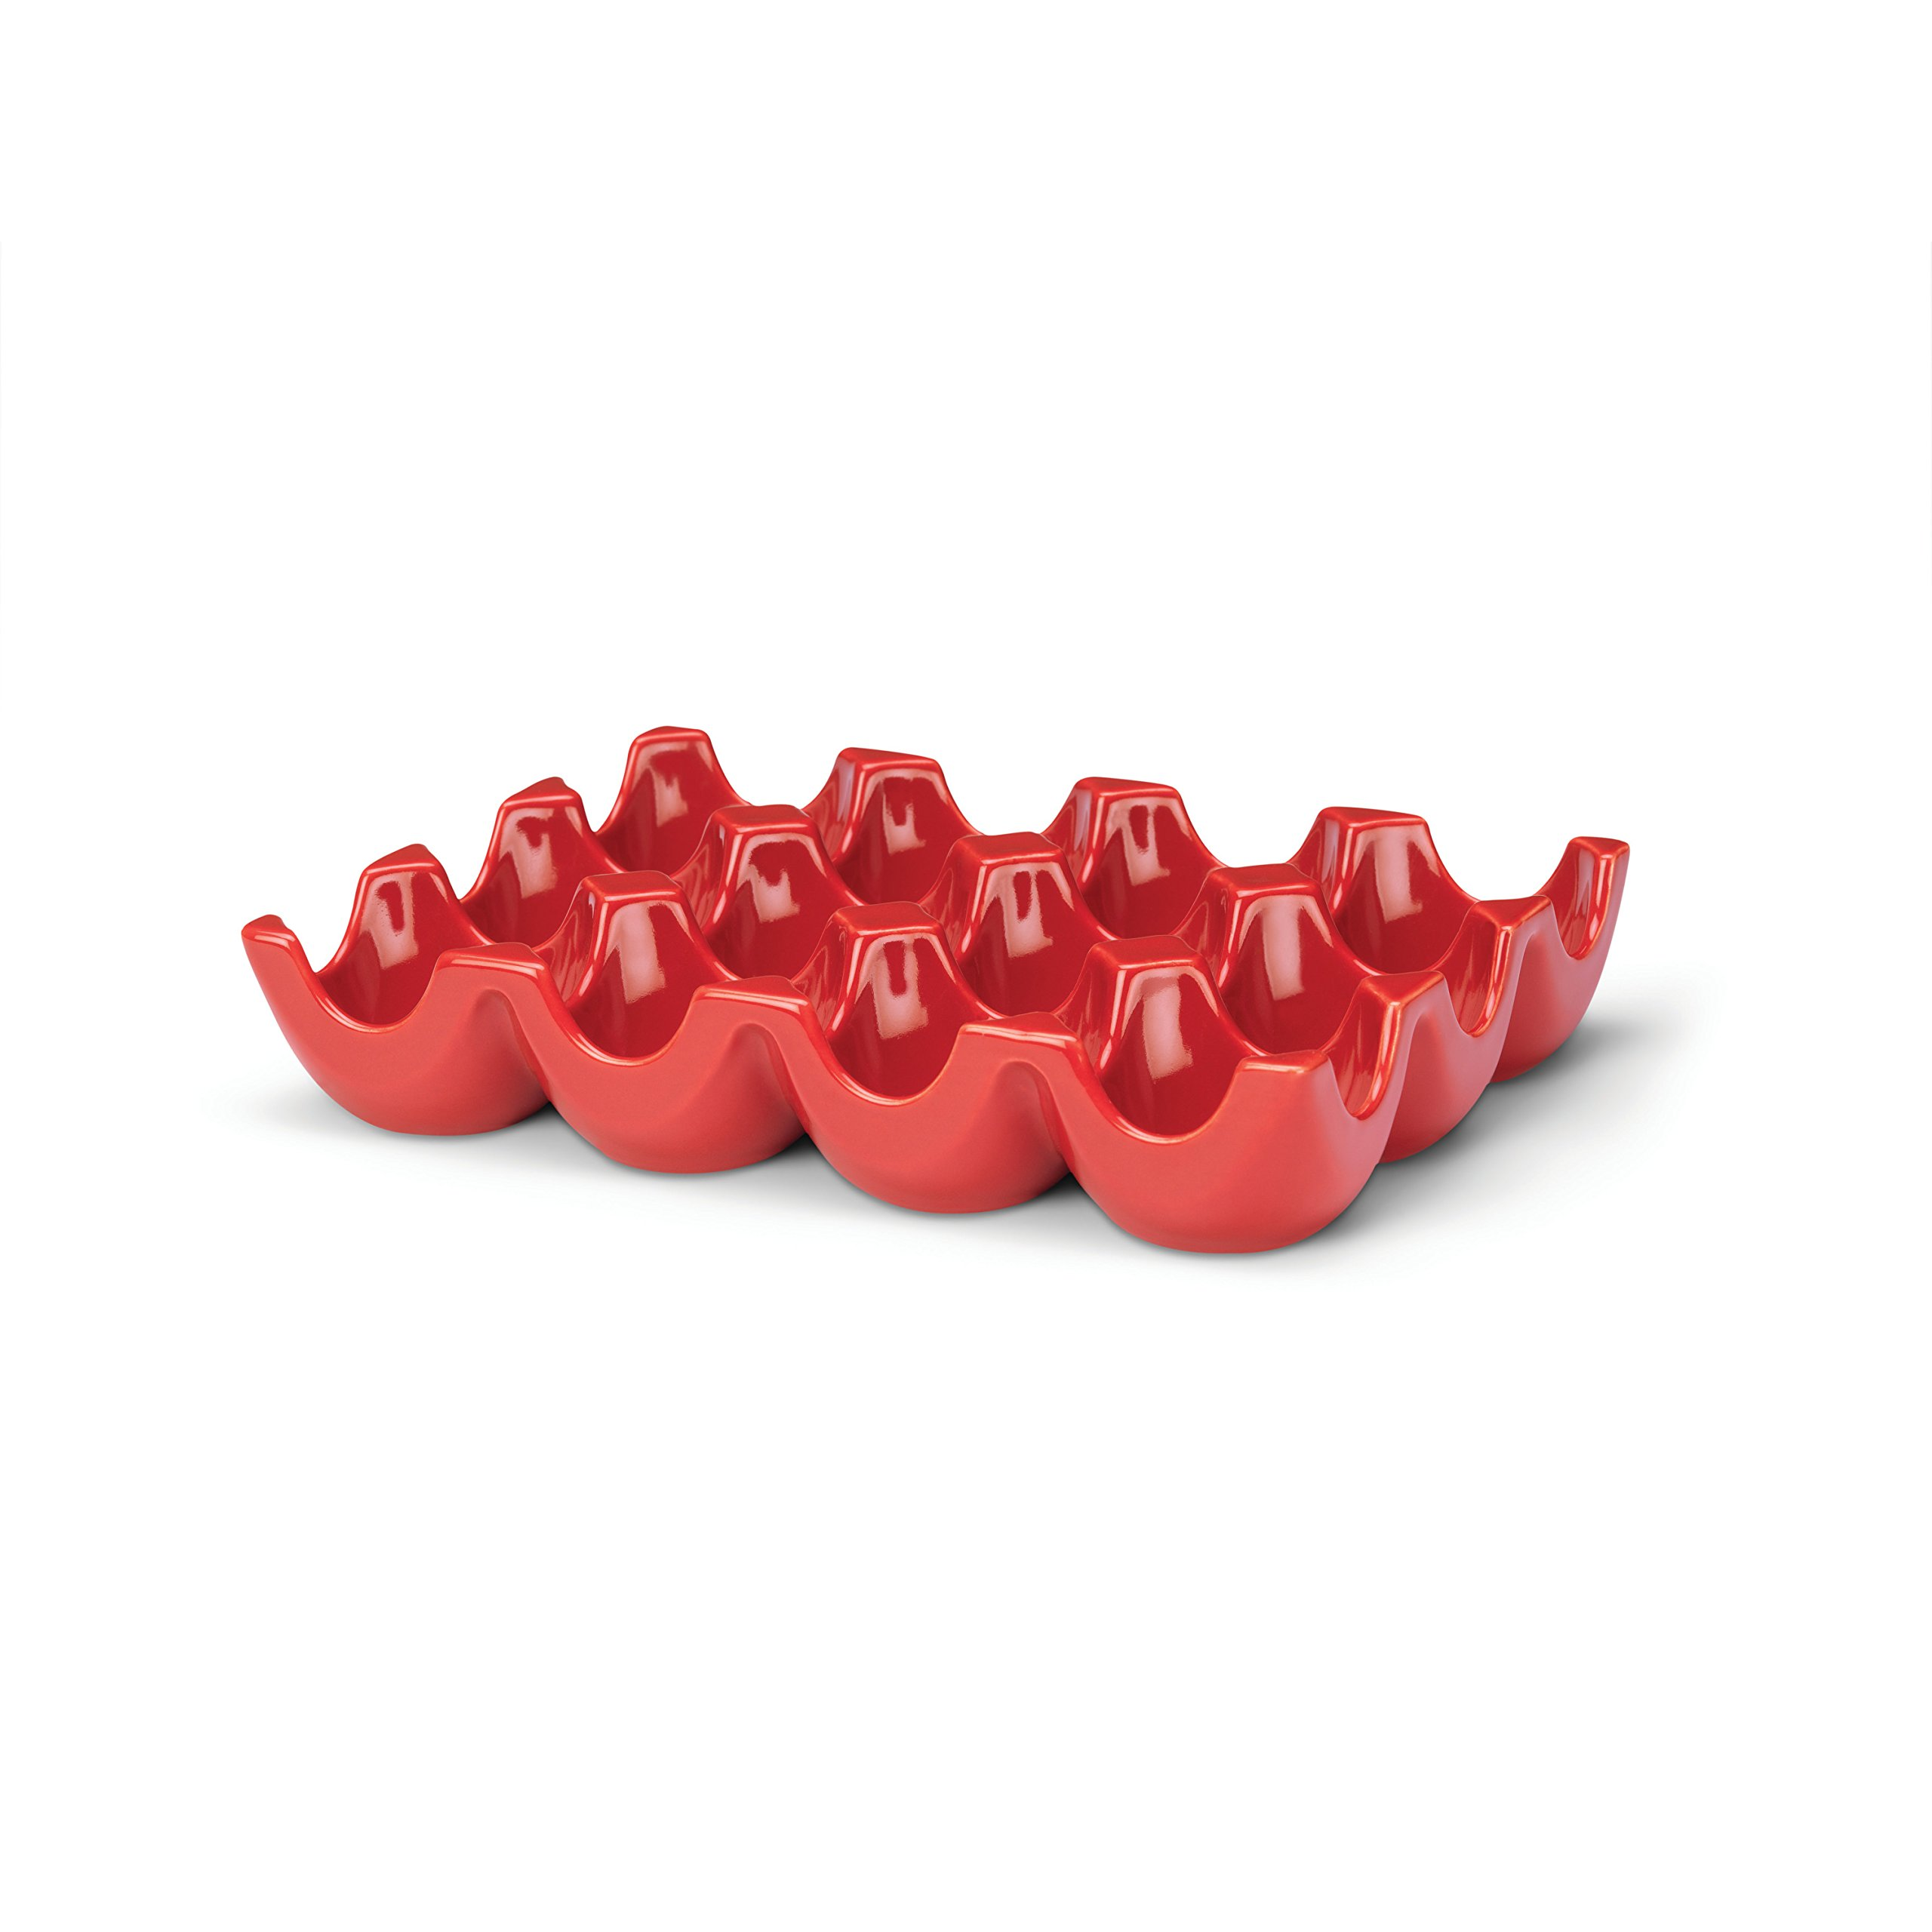 Rachael Ray 53106 Serveware Egg Tray, 12-Cup, Red